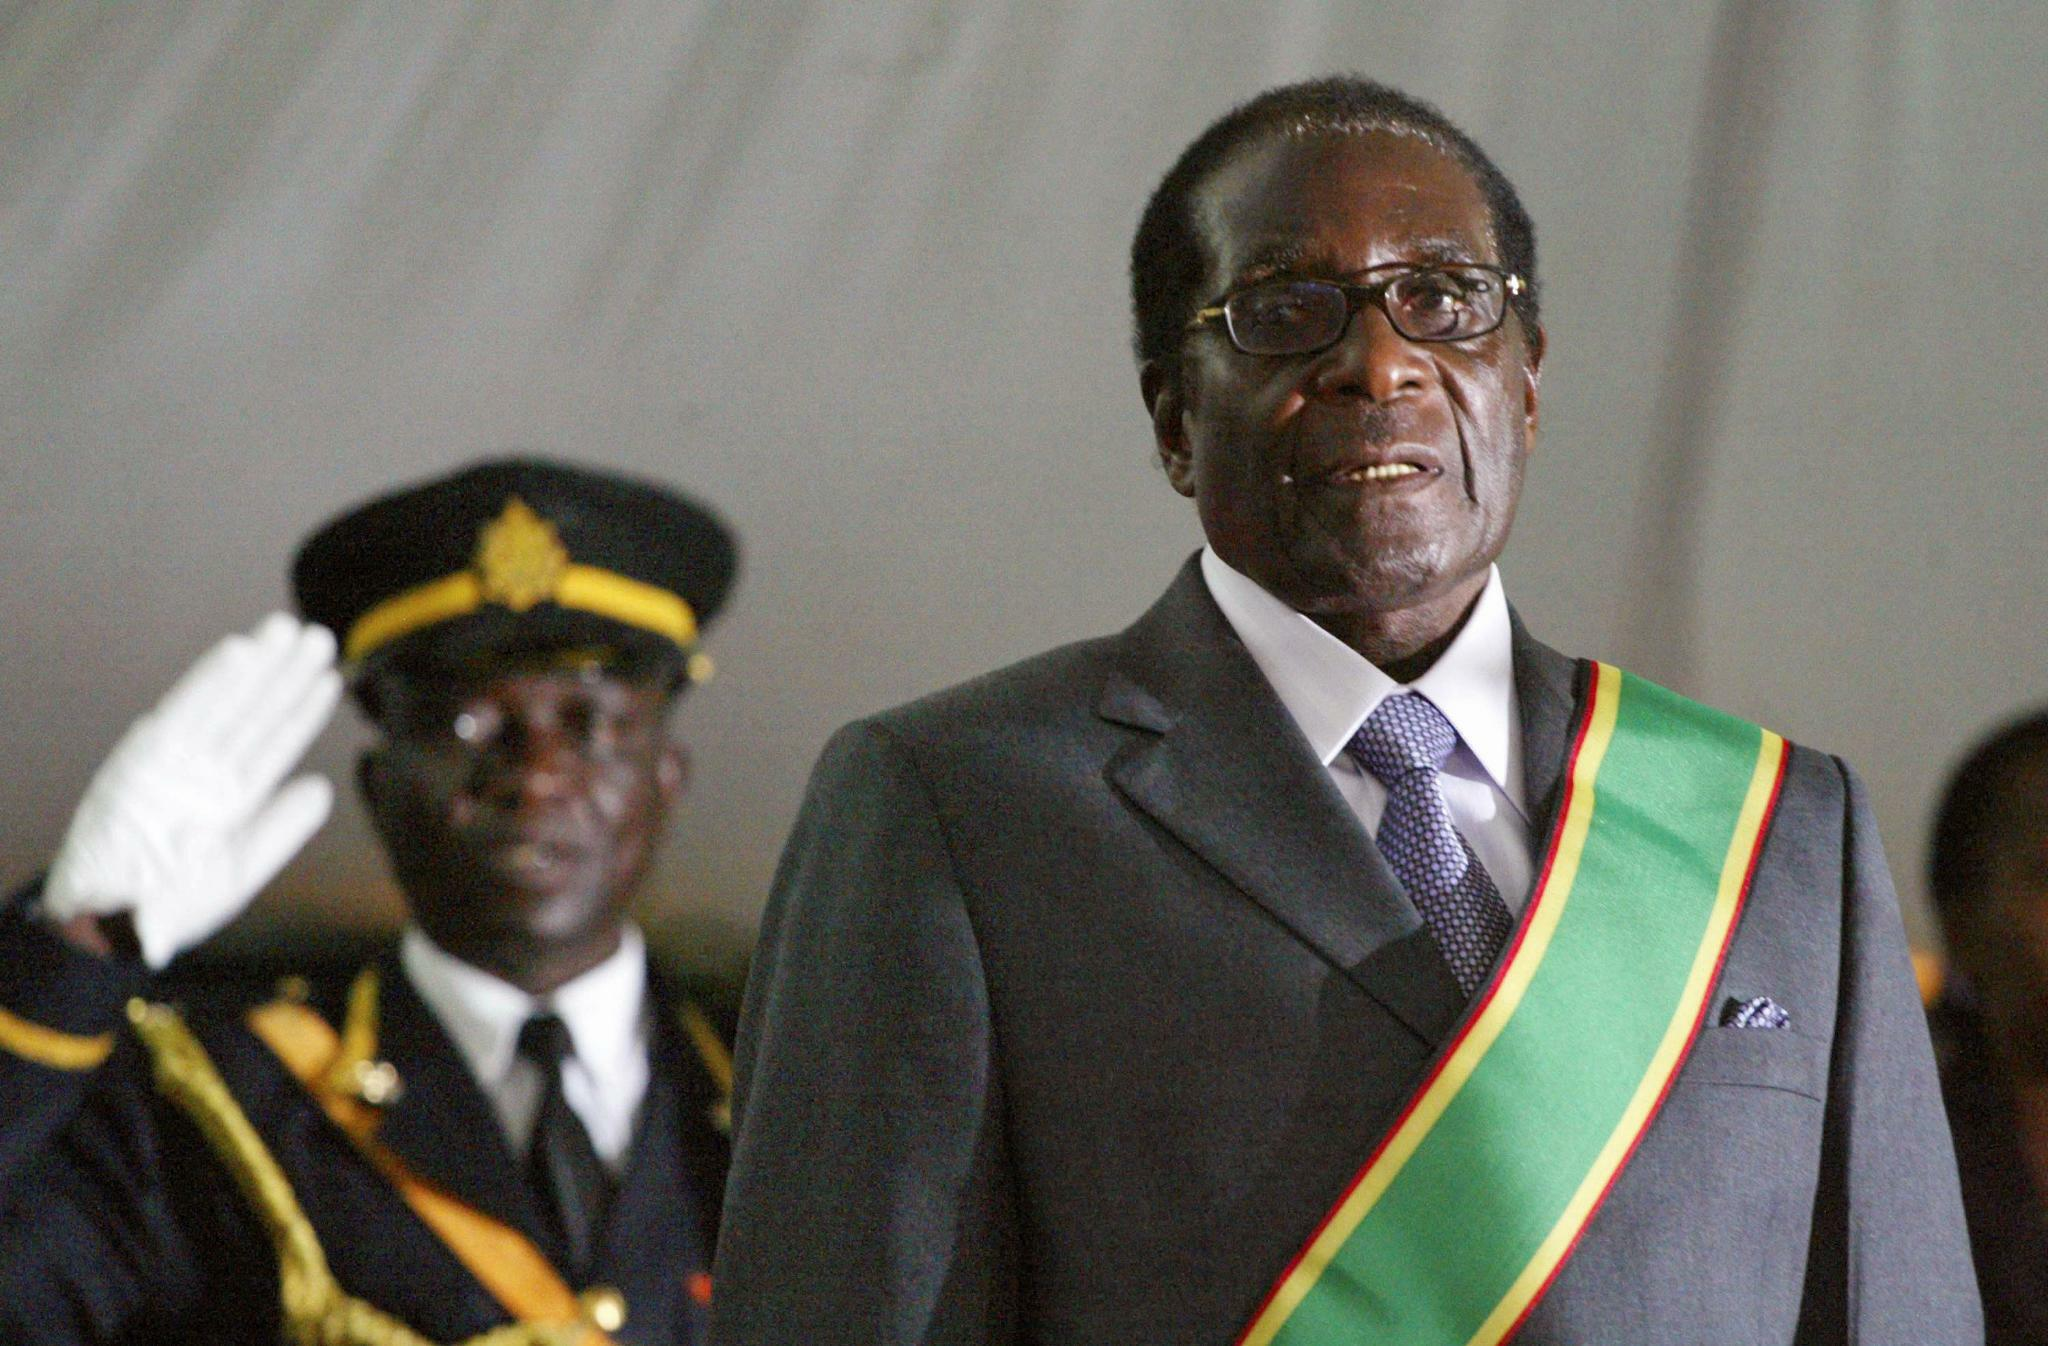 http://tagesspiegel.de/images/file-photo-file-photo-of-zimbabwes-president-robert-mugabe-attending-his-inauguration-in-harare/20613542/1-format43.jpg